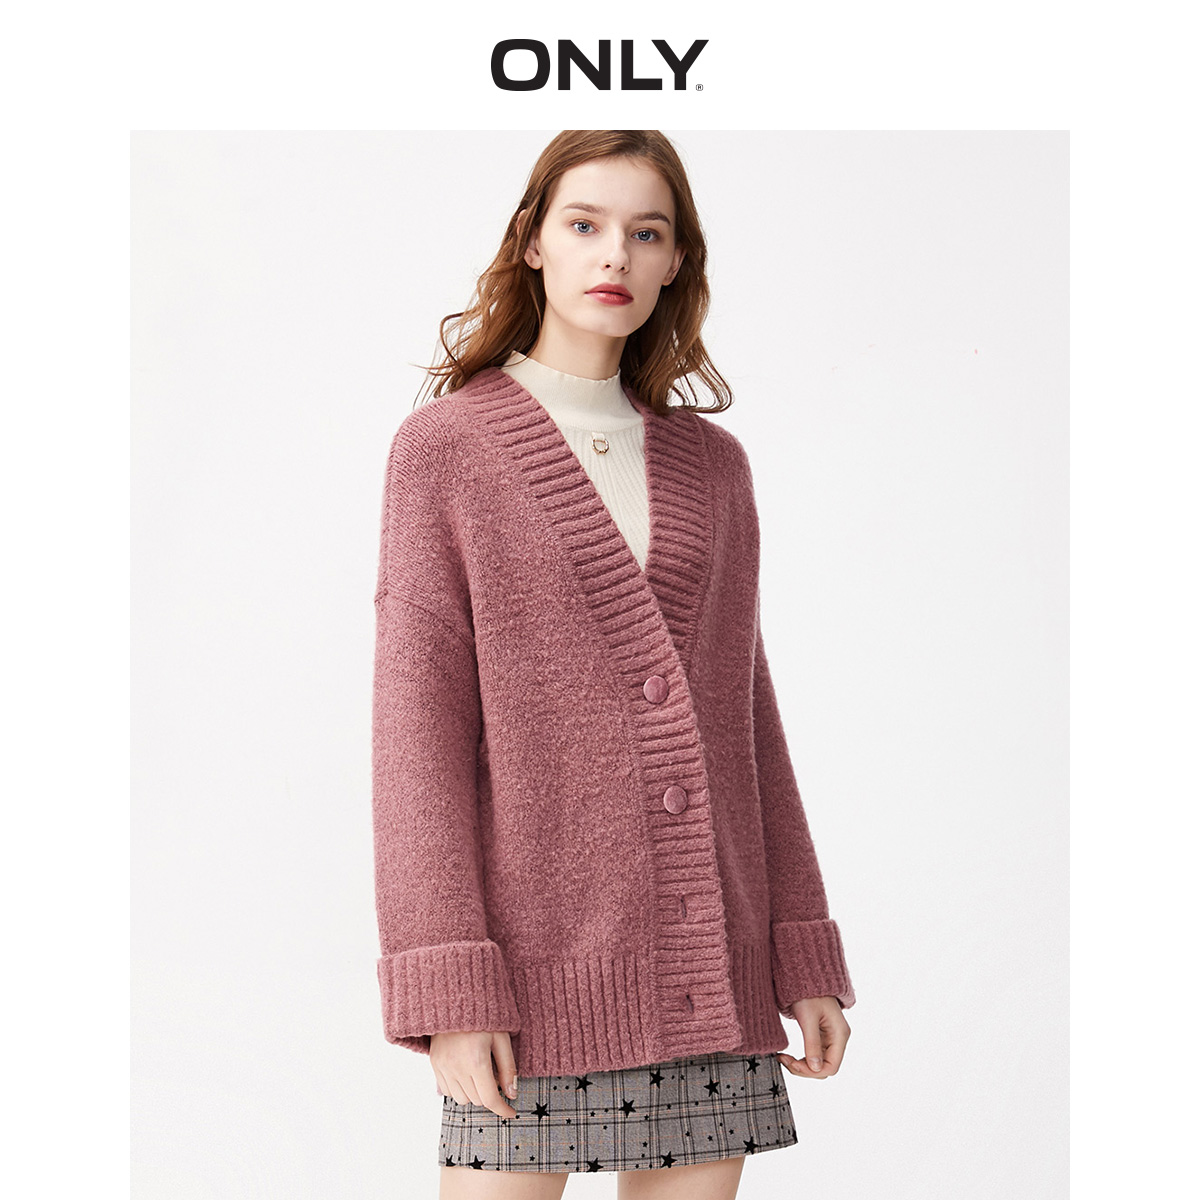 ONLY Women's Loose Fit Cardigan Knit | 11933B506